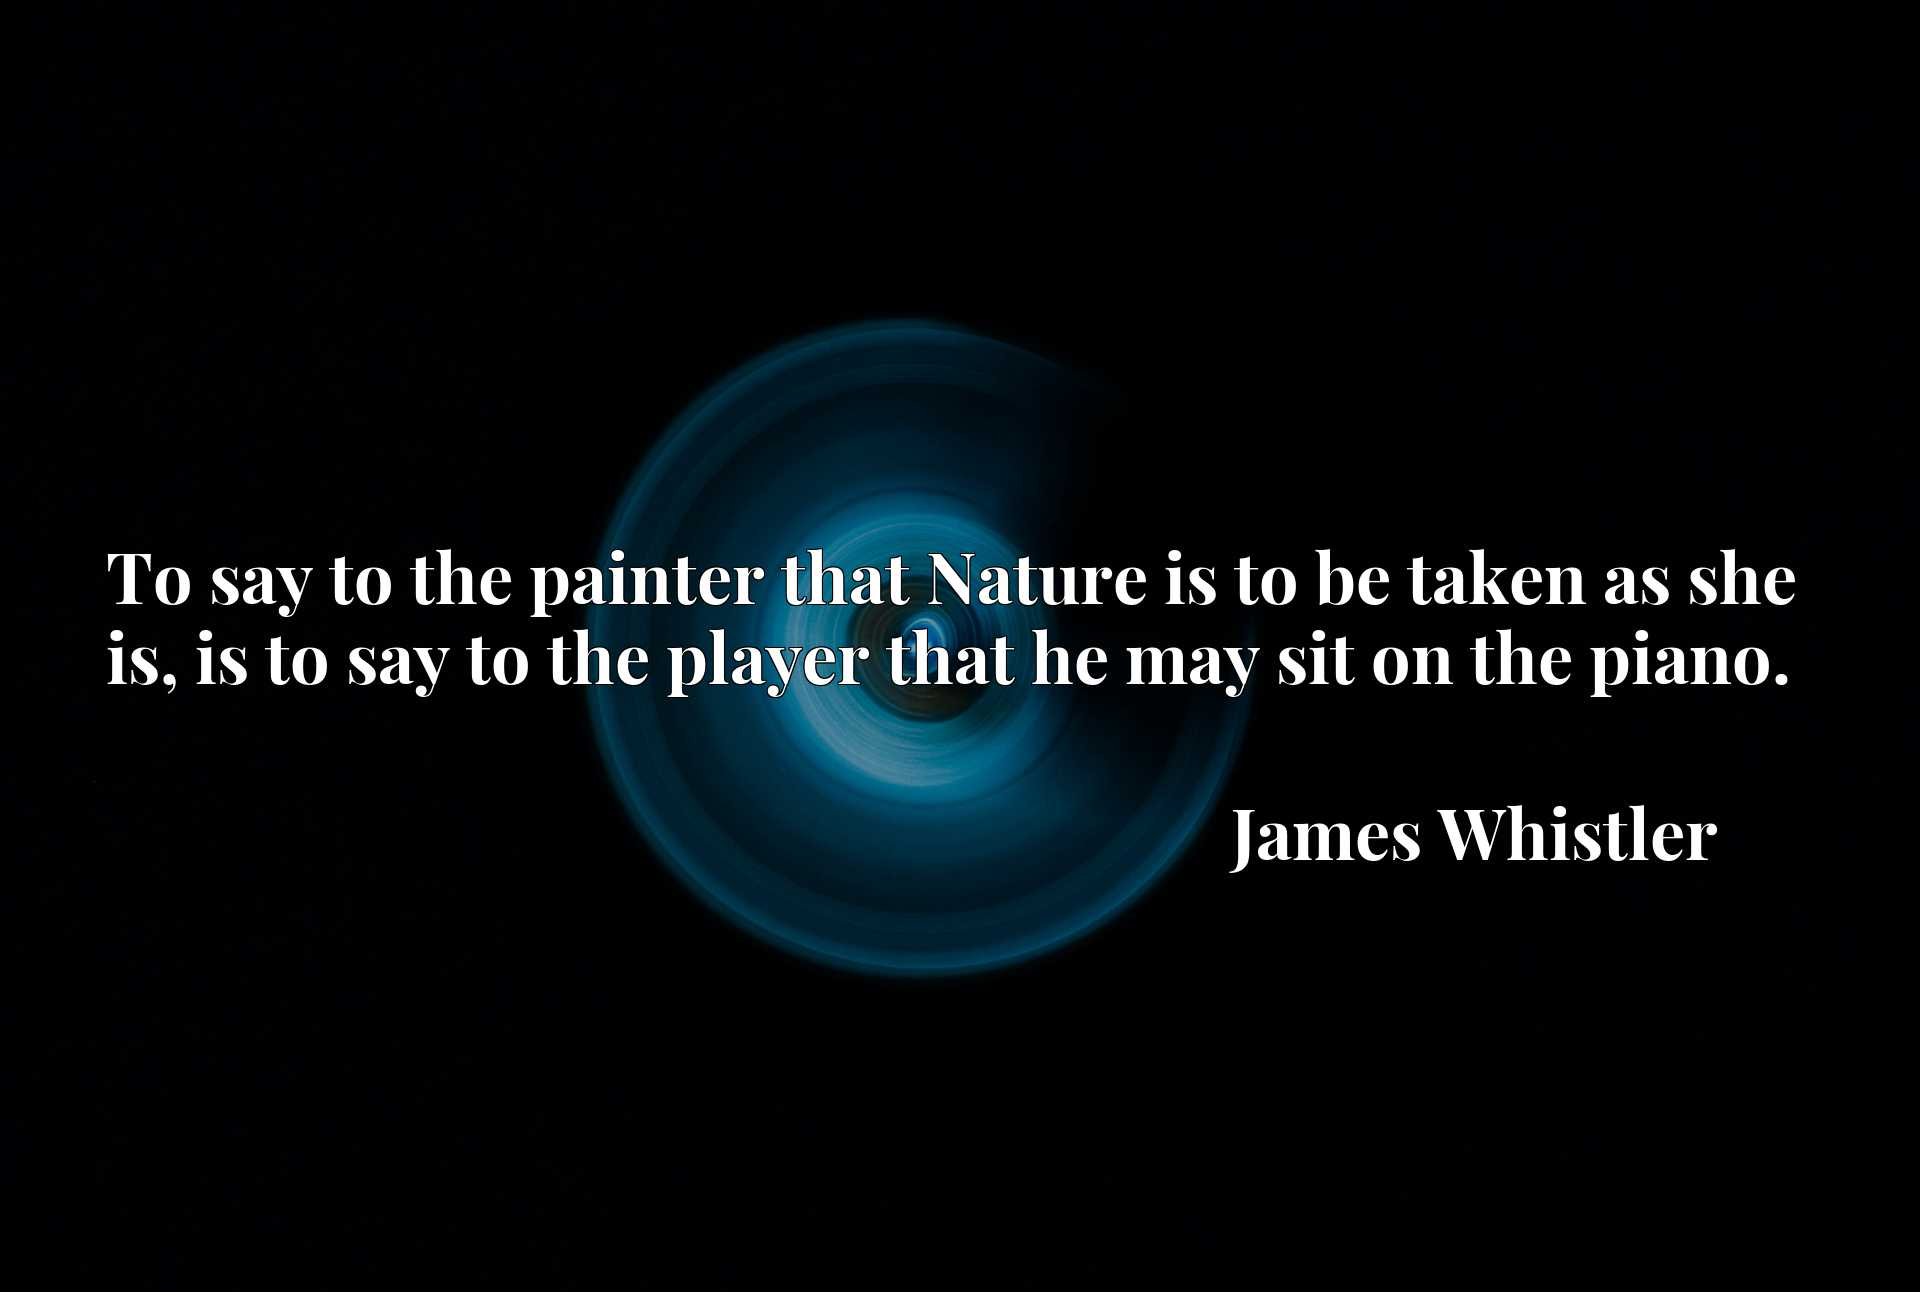 Quote Picture :To say to the painter that Nature is to be taken as she is, is to say to the player that he may sit on the piano.